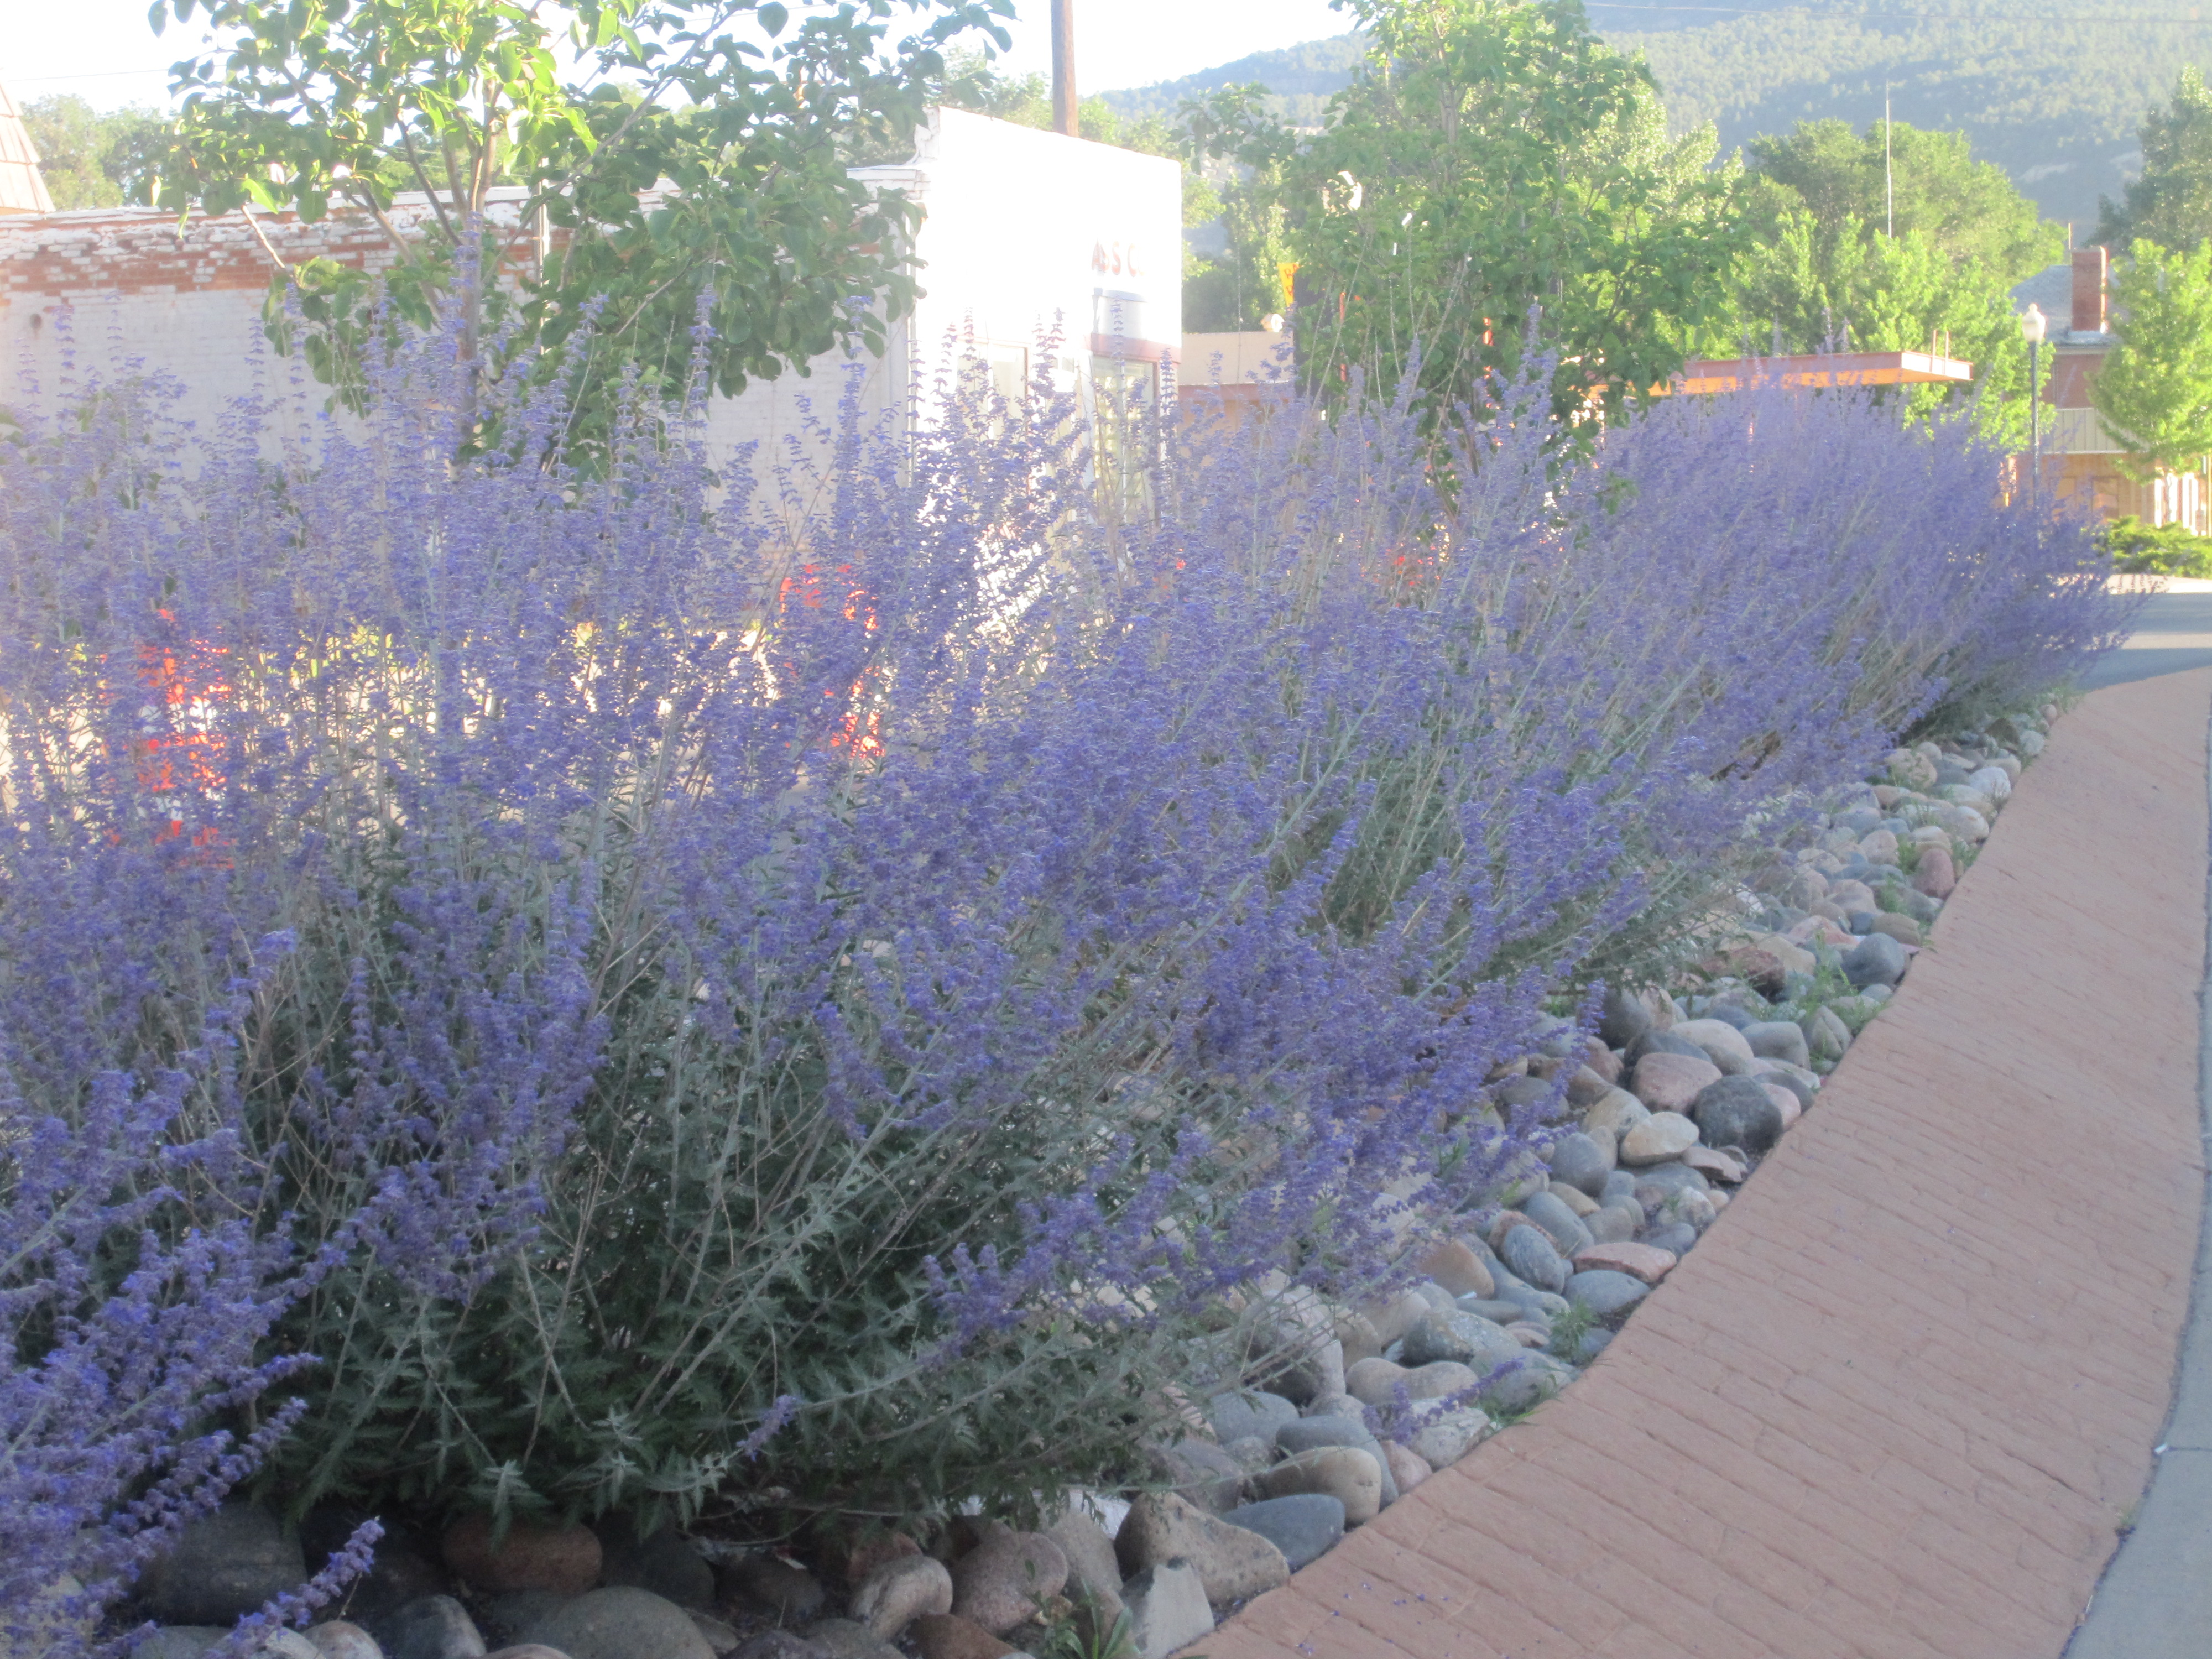 File:Revised purple sagebrush, Raton, NM IMG 4990.JPG ...